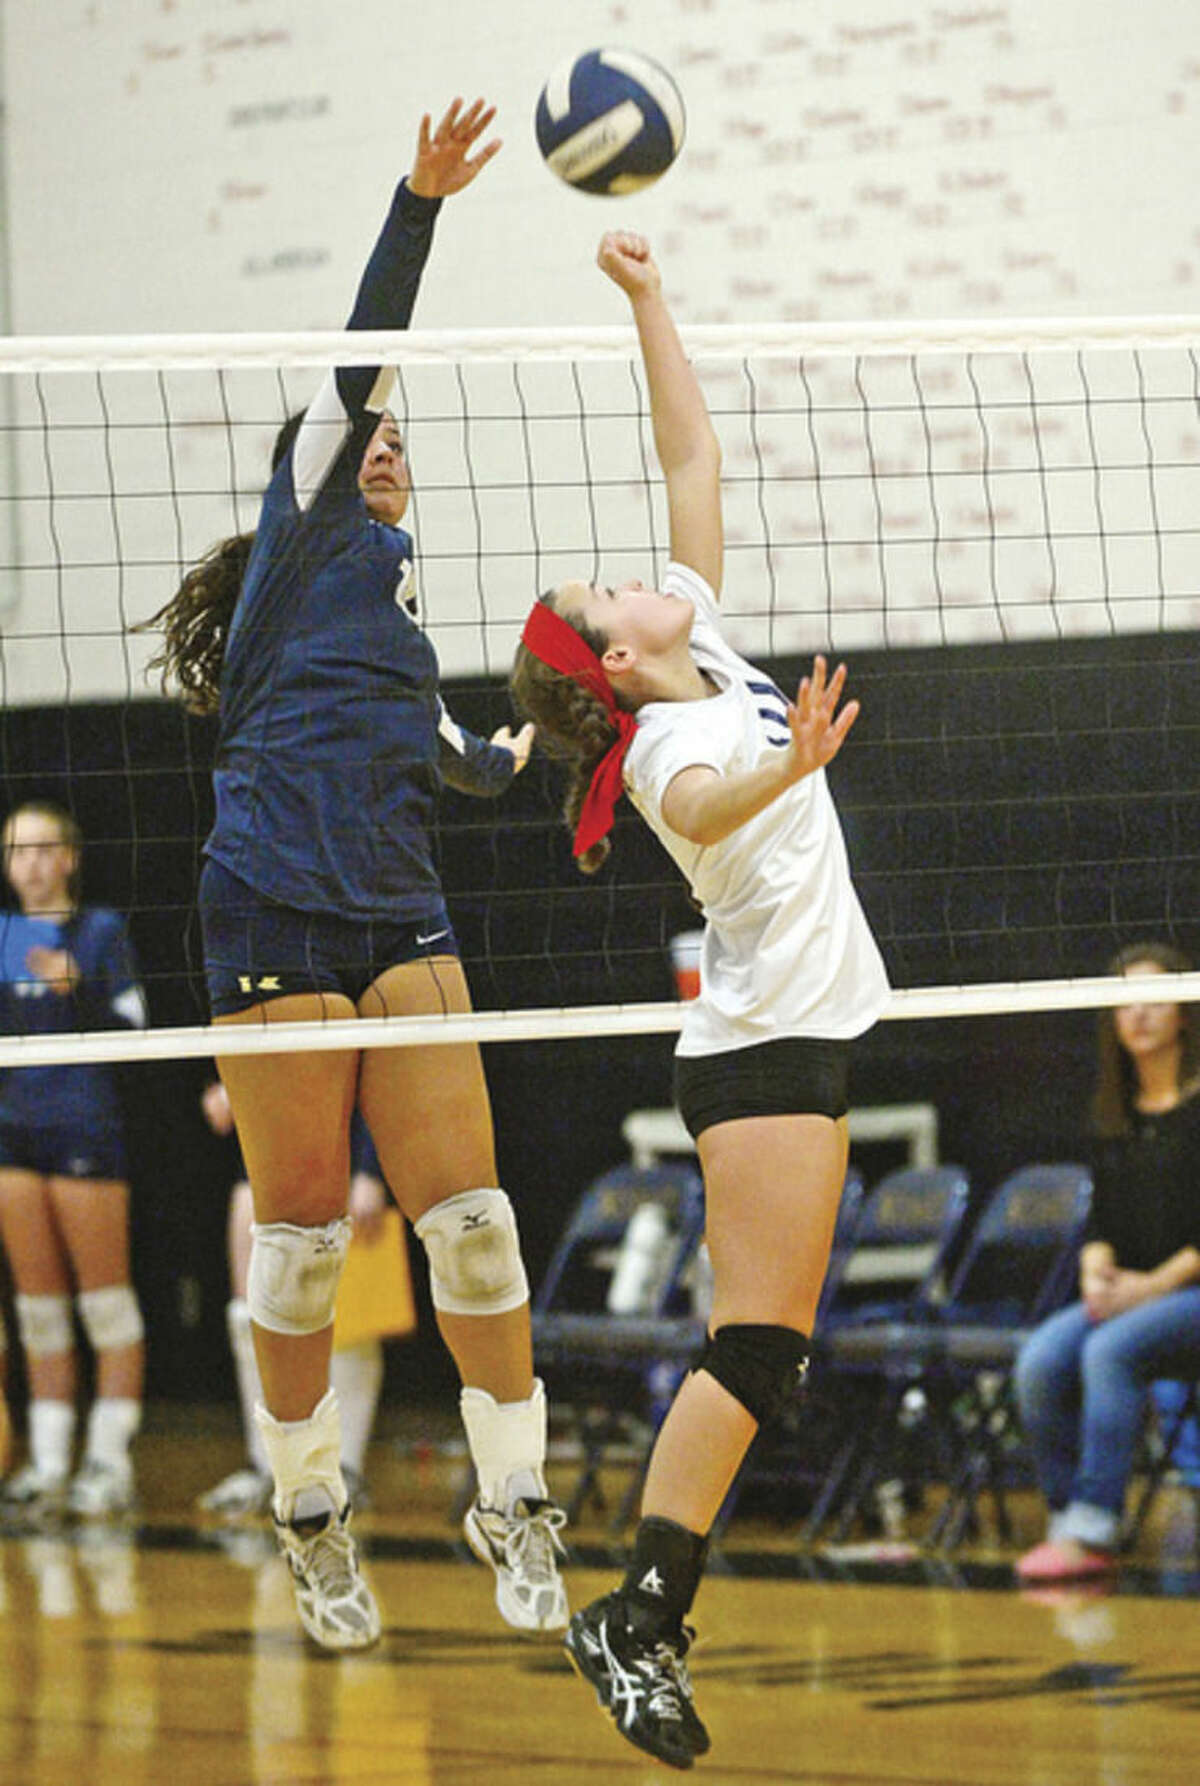 Hour photo/Erik Trautmann King School's Ryan Correa (blue) looks to block the ball against GFA's Meg Nesi as the King School hosts Greens Farms Academy in a New Englnad tournament volleyball semifinal on Saturday.